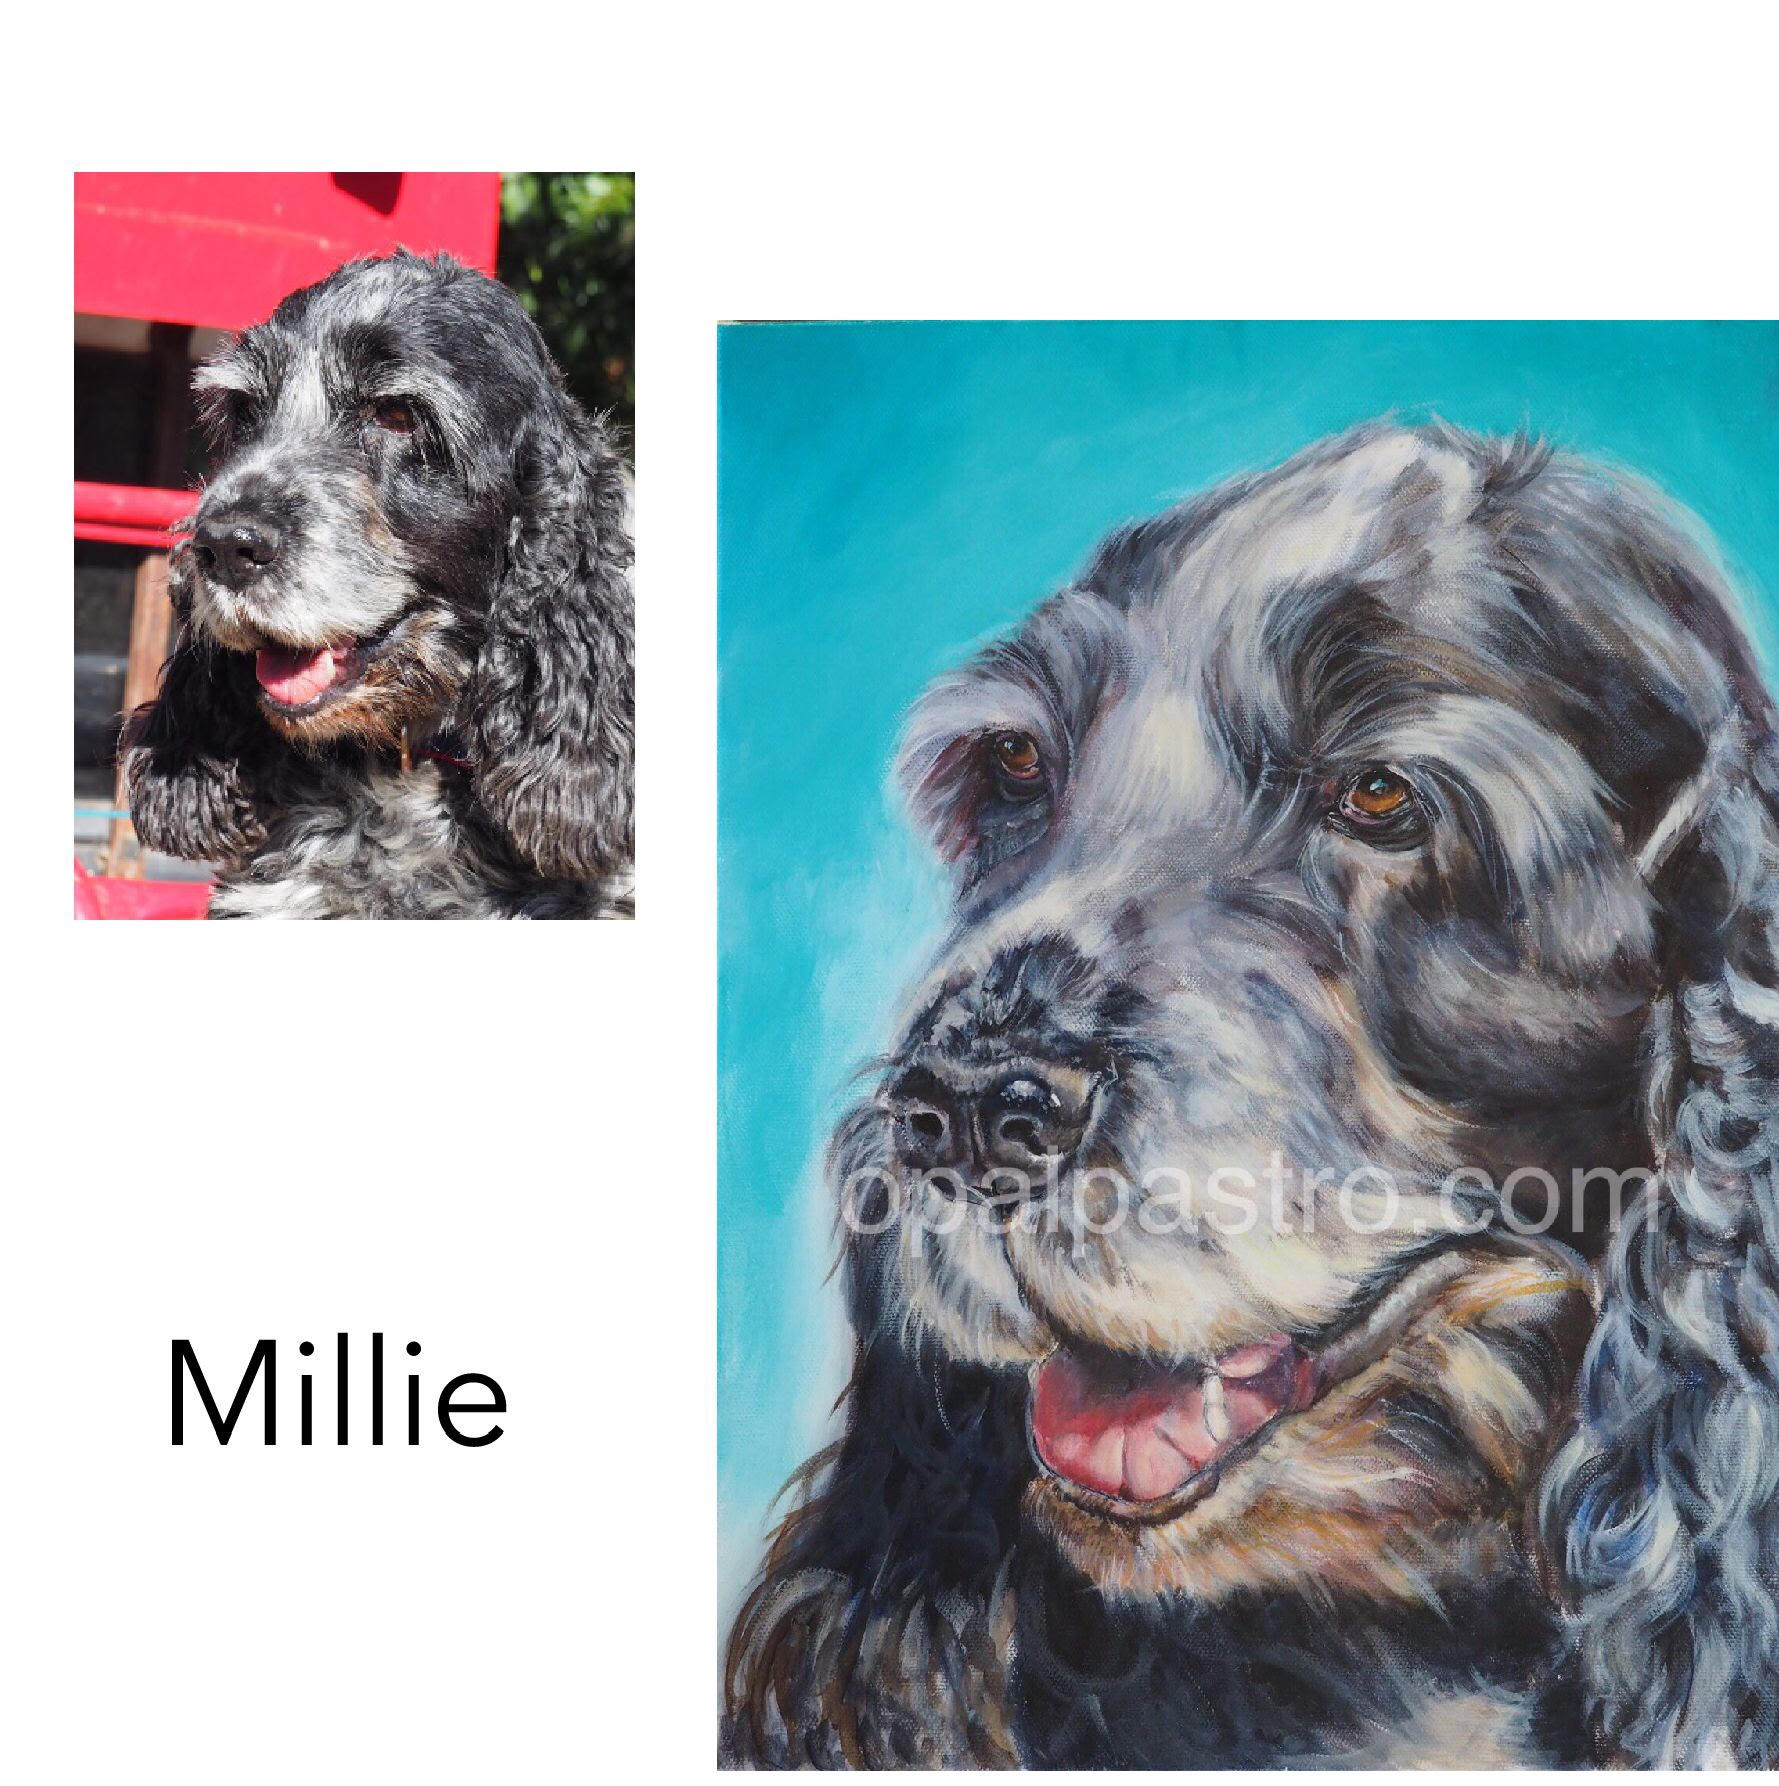 """Cocker Spaniel - Acrylic on Canvas, 12"""" x 16"""" (30.48cm x 40.64cm)Private CommissionPromised Land, NSW—————————————————-Millie is a gentle soul and a truely beautiful girl inside and out. She loves cuddles, swimming in her own private waterhole and…..cuddles."""